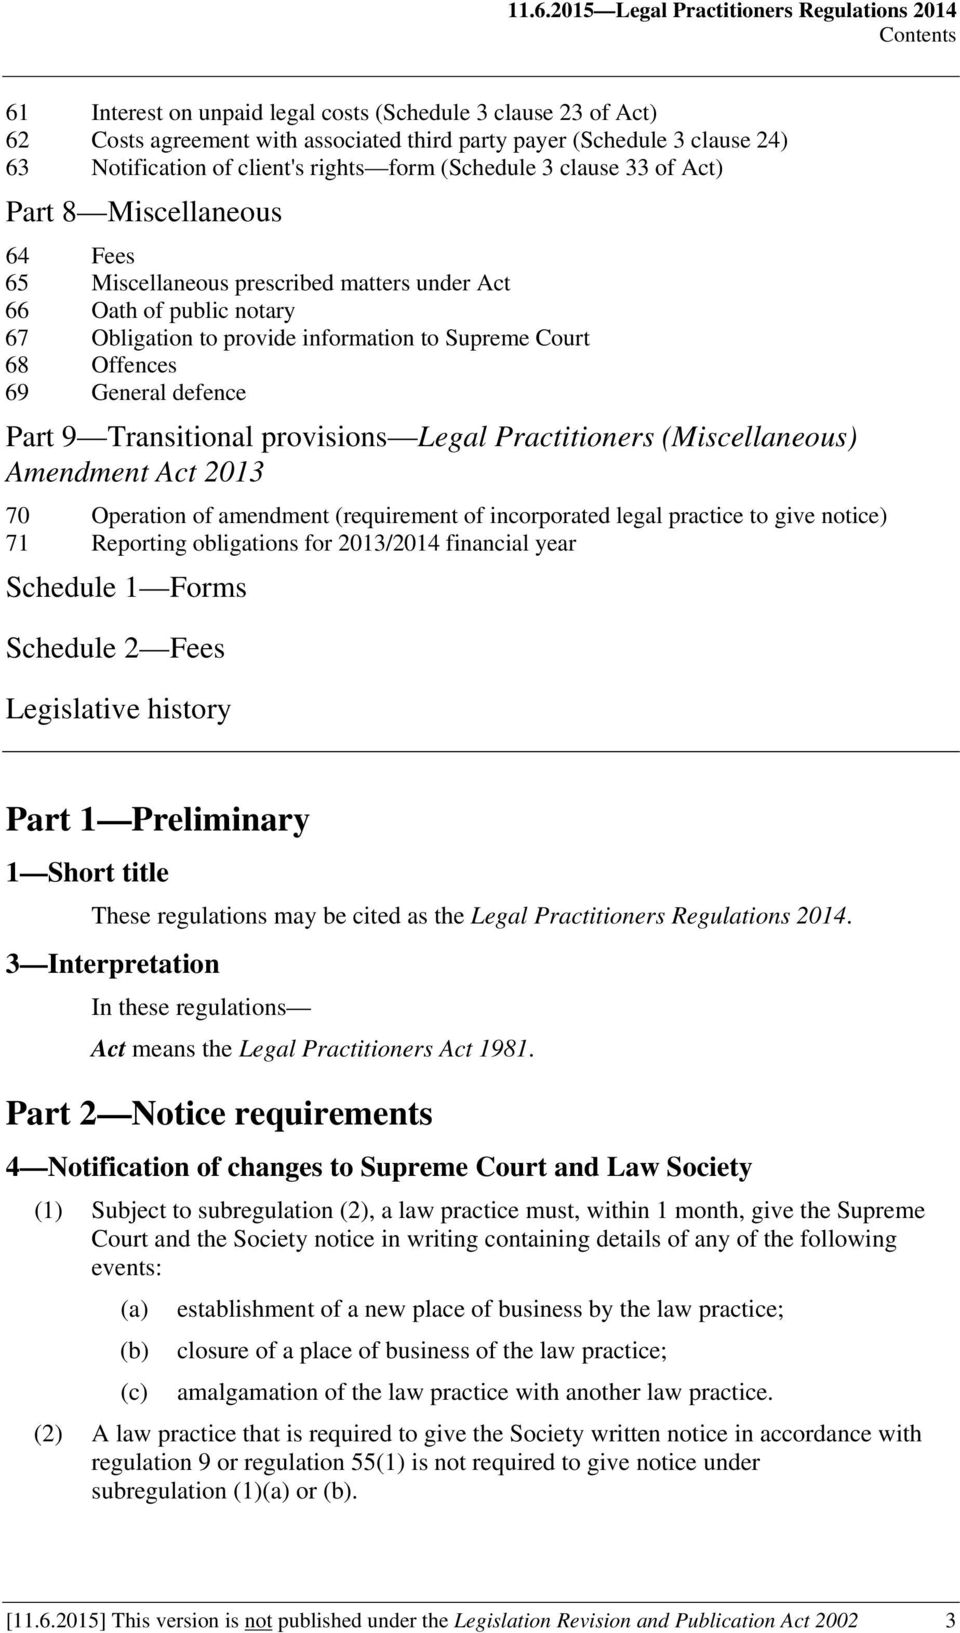 information to Supreme Court 68 Offences 69 General defence Part 9 Transitional provisions Legal Practitioners (Miscellaneous) Amendment Act 2013 70 Operation of amendment (requirement of